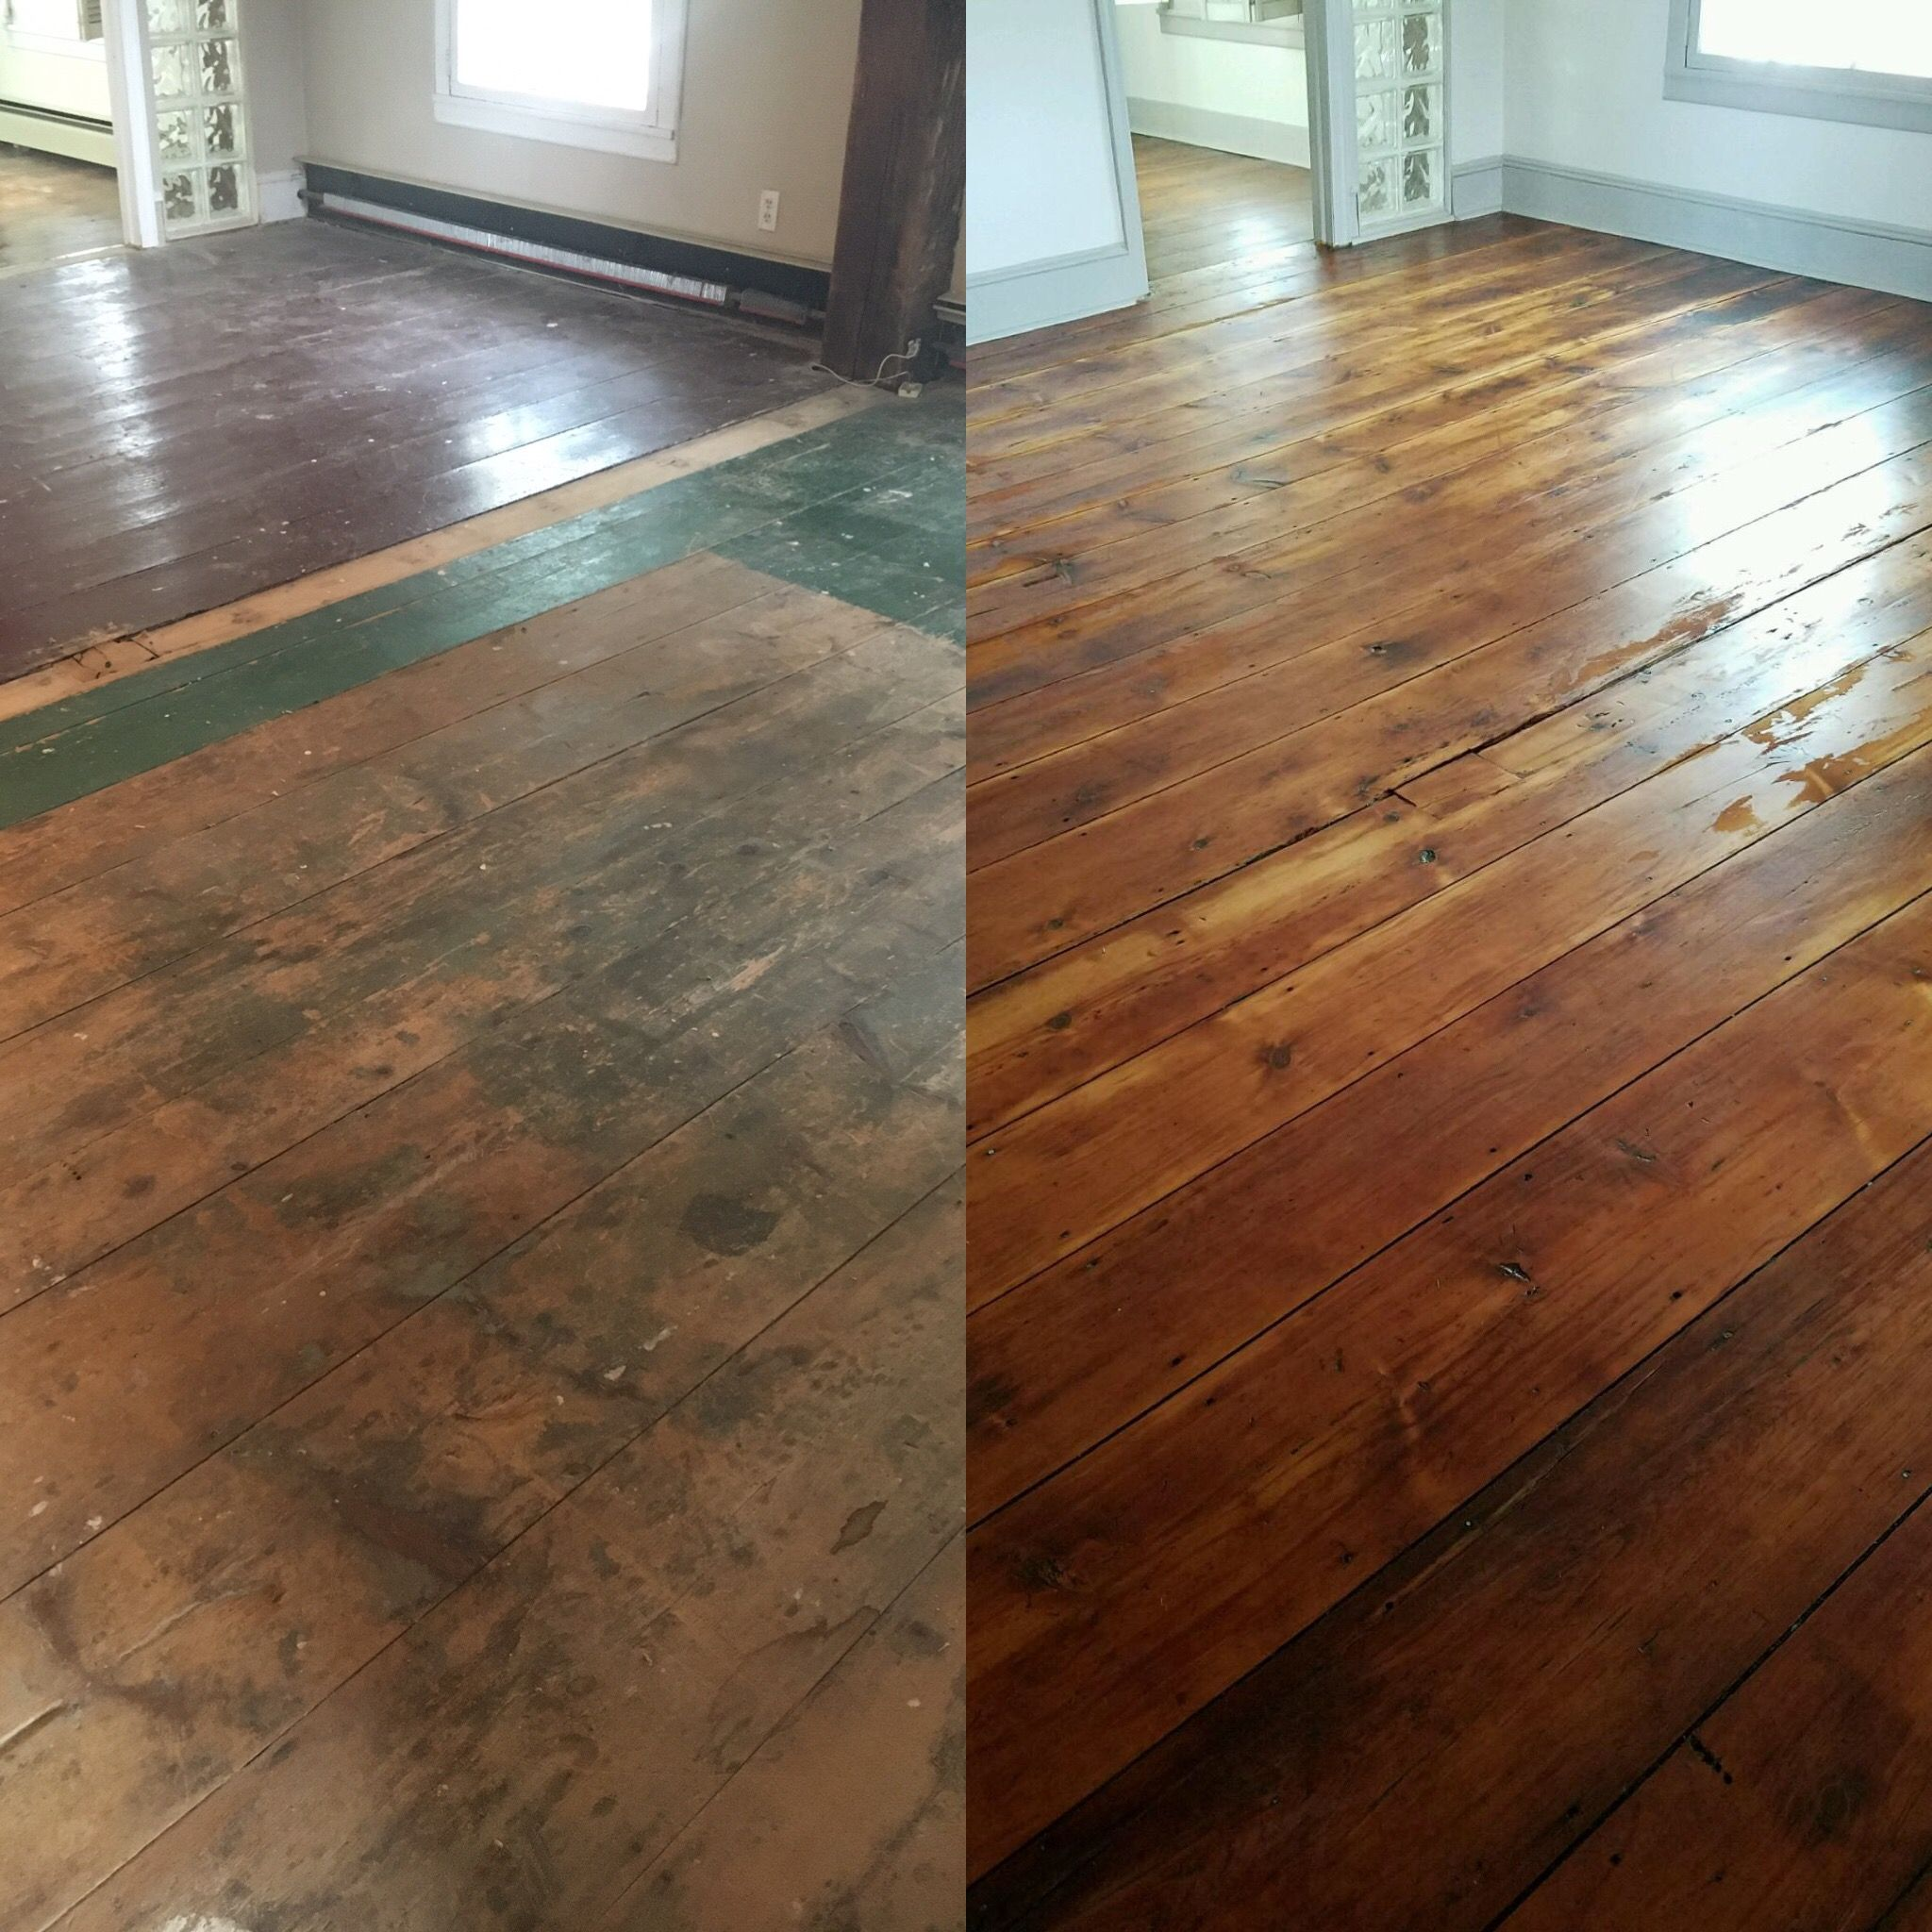 Original Wood Floors Pumpkin Pine Circa 1840 Before And After Refinishing Old